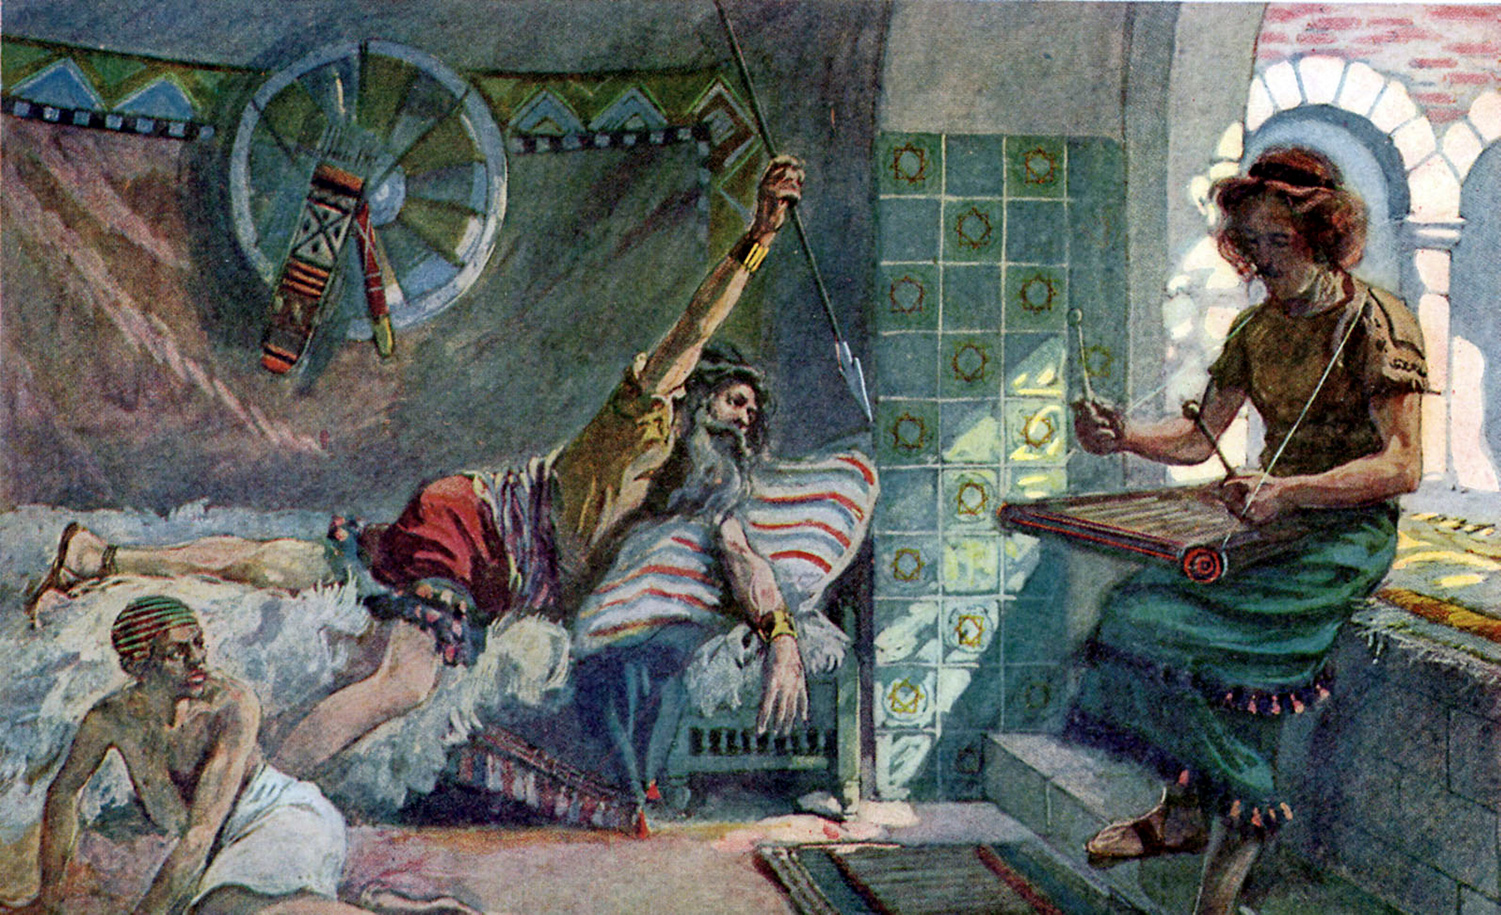 An illustration of King Saul attempting to stab David by James Tissot. Culture Club/Getty Images.